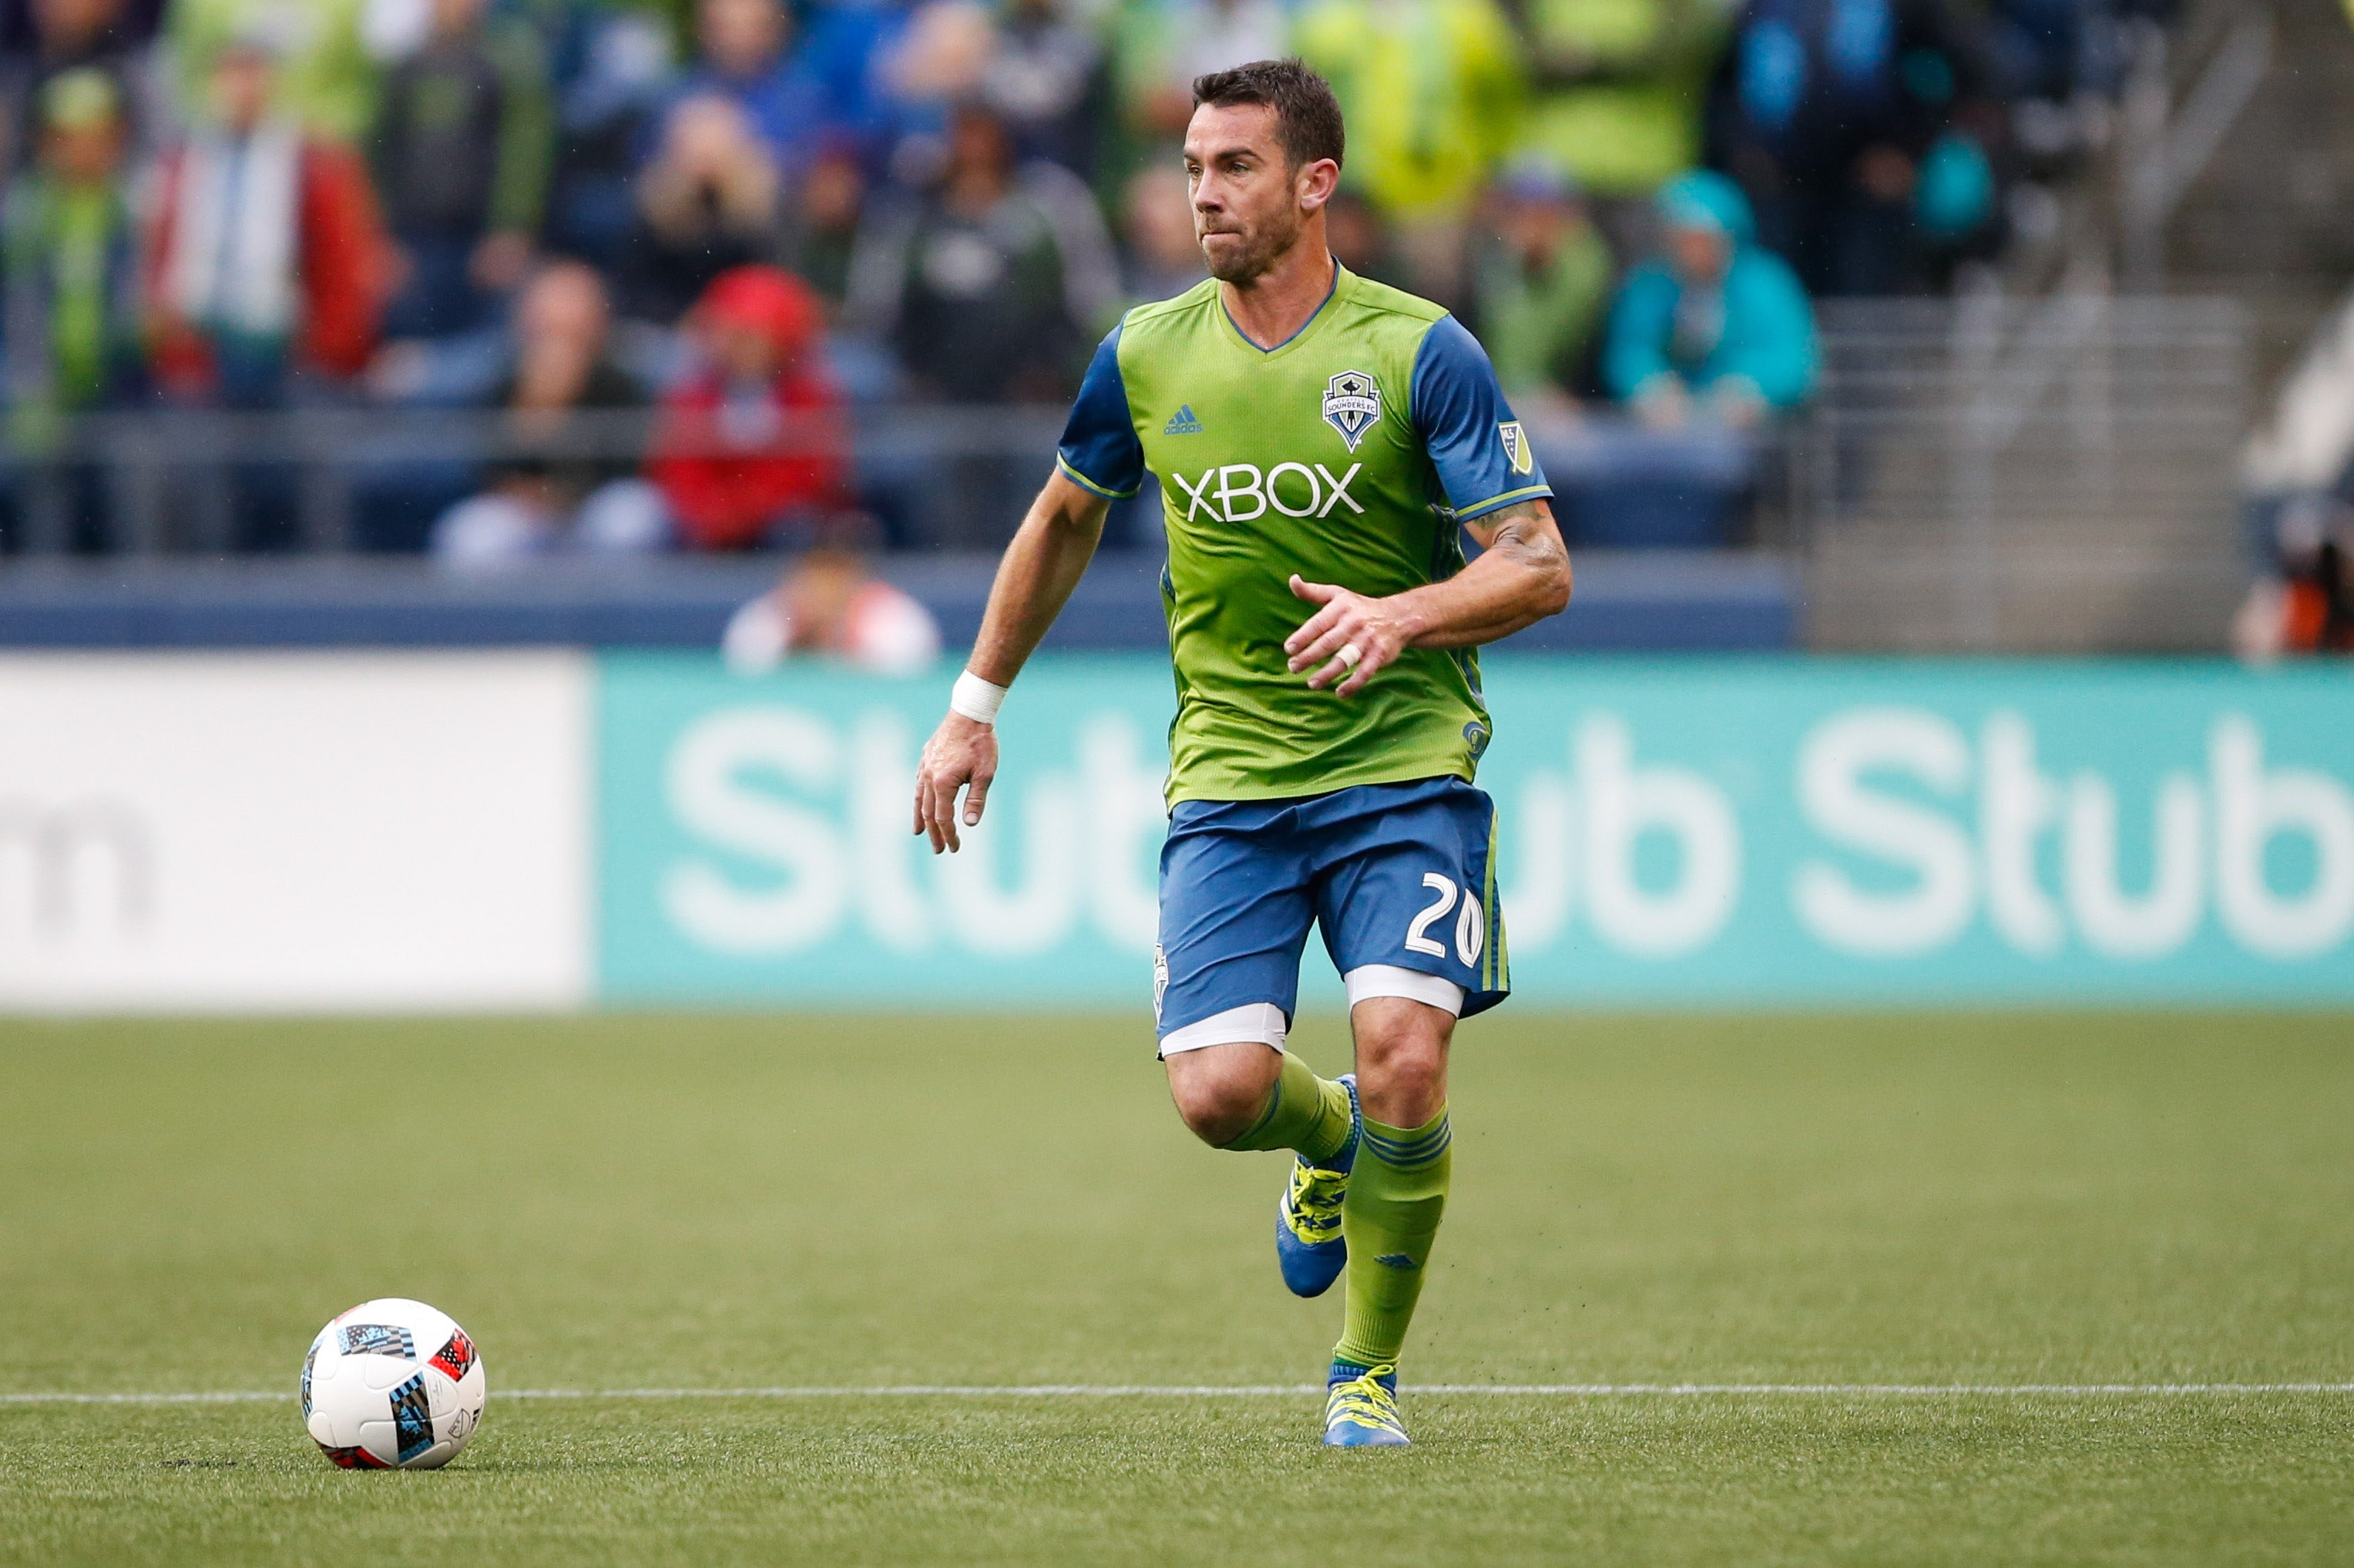 Zach Scott Playing for the Seattle Sounders